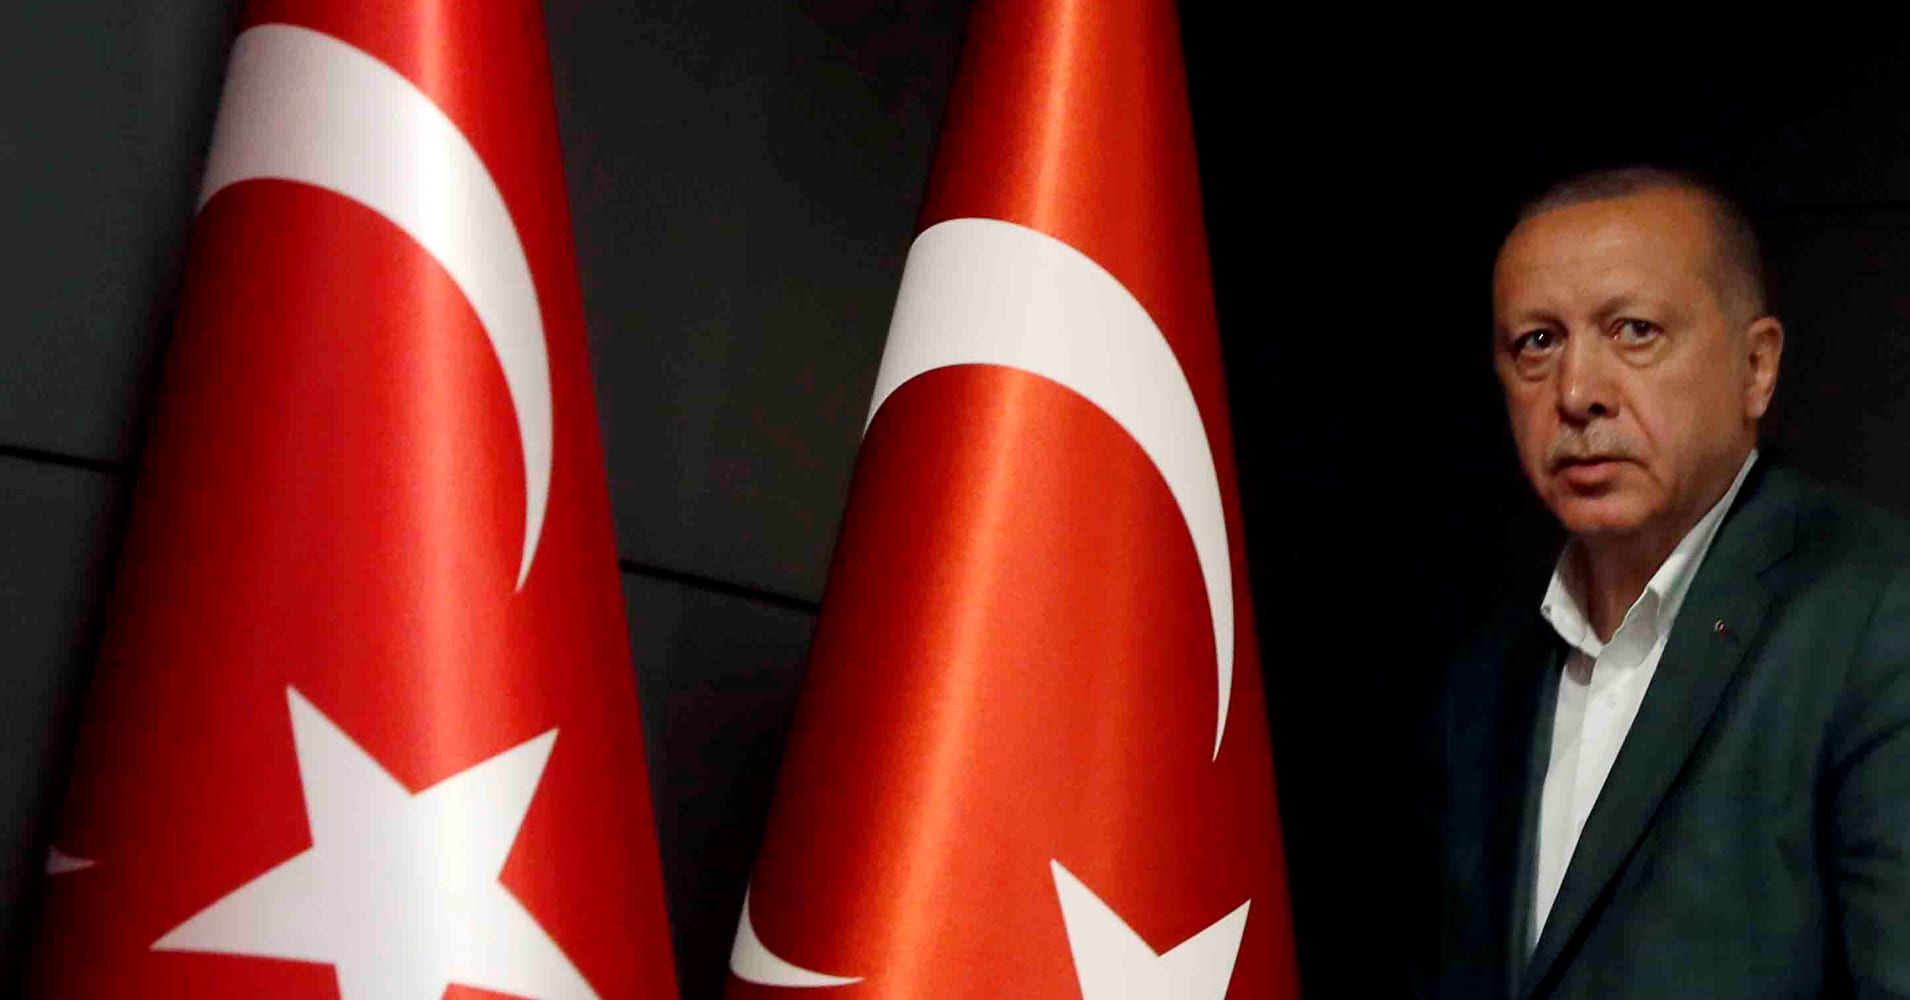 Turkey's economy is spiraling — and a new election will make things worse